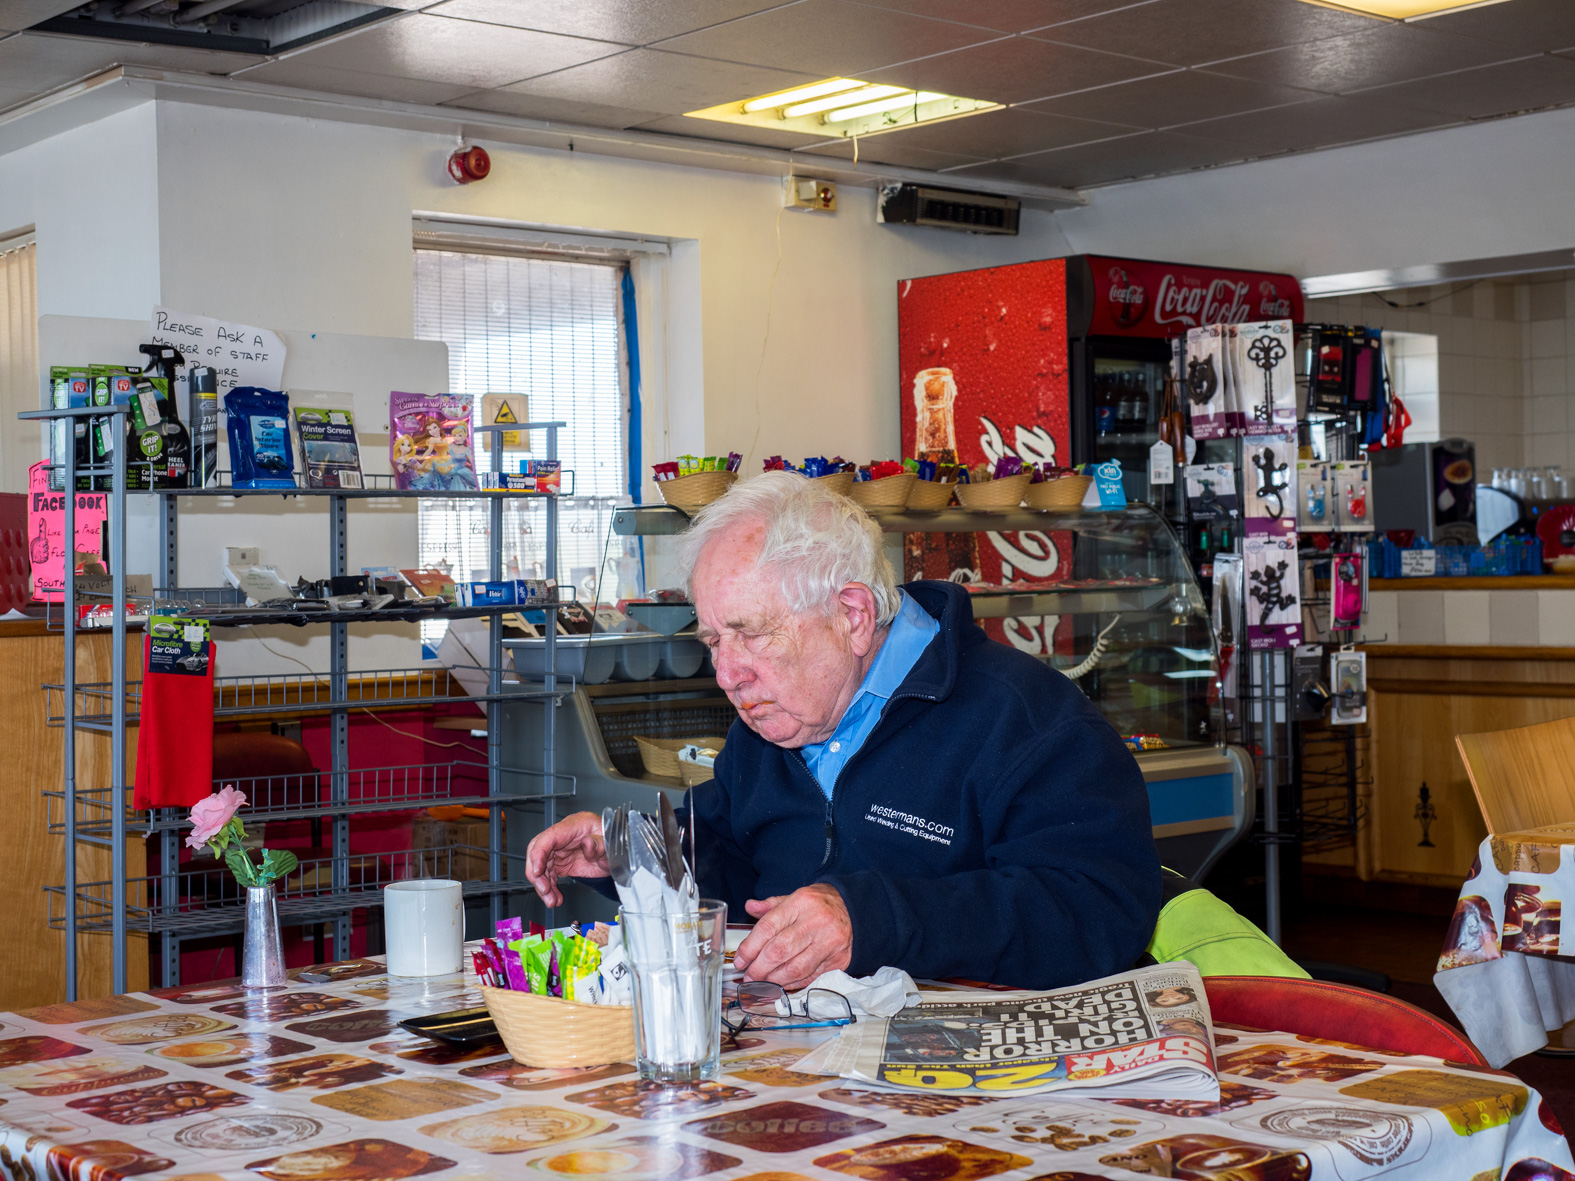 A customer at Flo's Cafe. Blyth, Nottinghamshire.